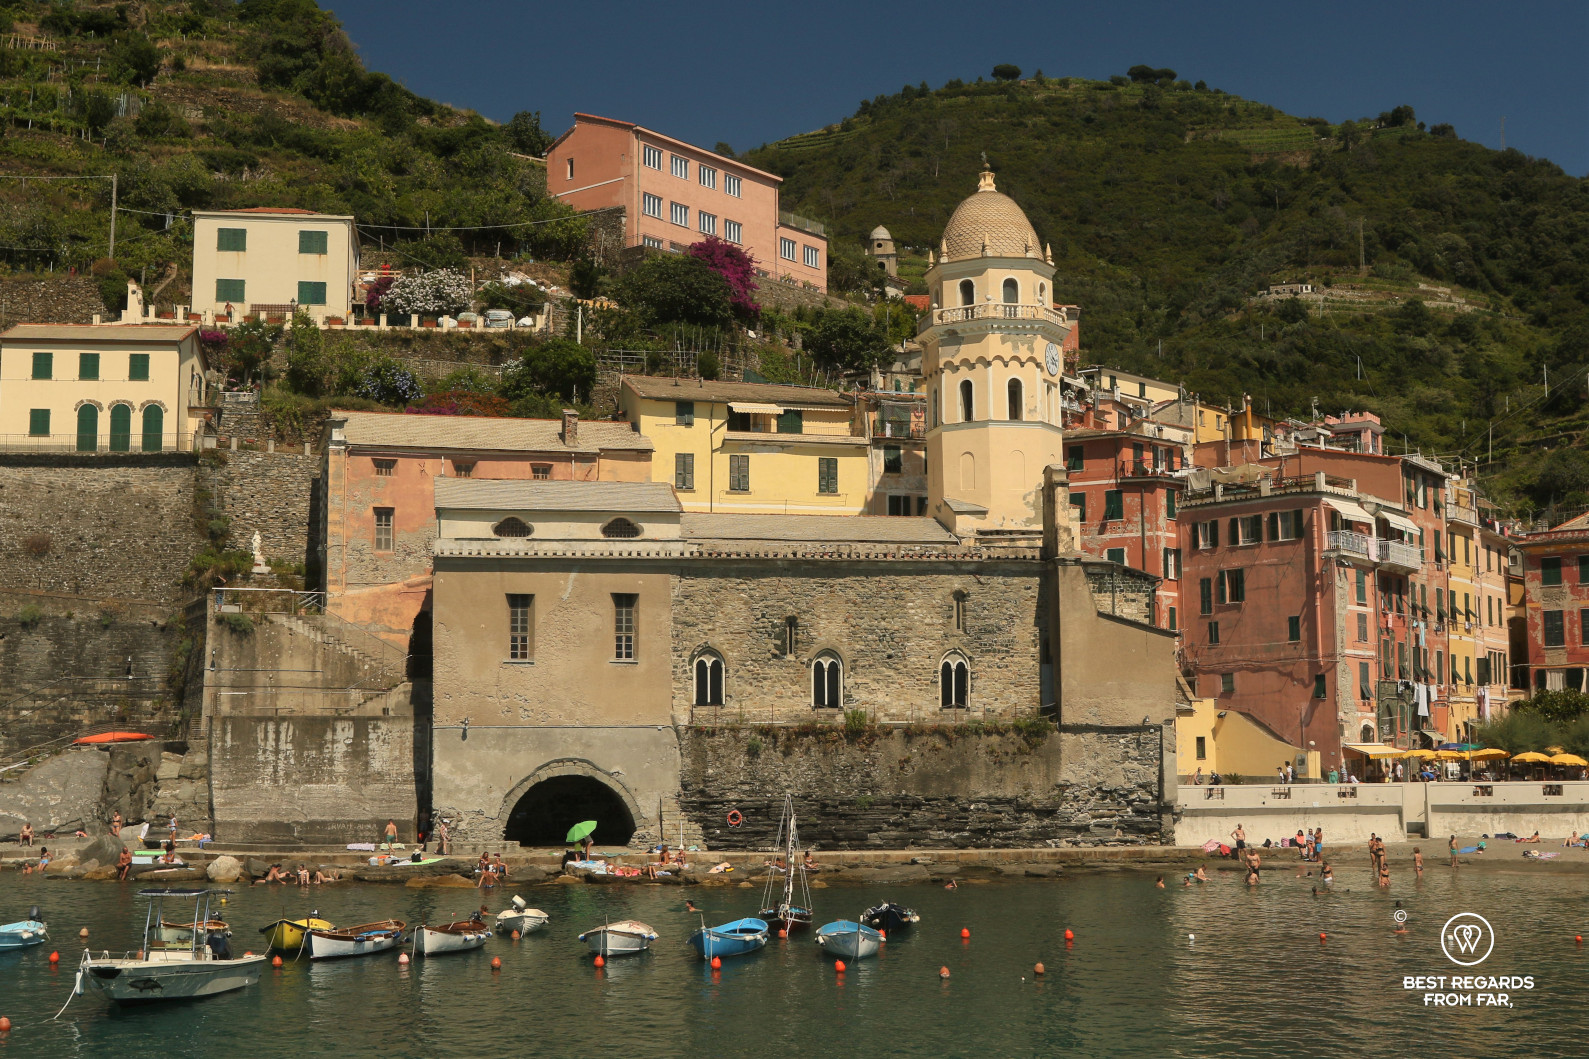 Small boats in the harbour of Vernazza, Italy with old houses and green mountains